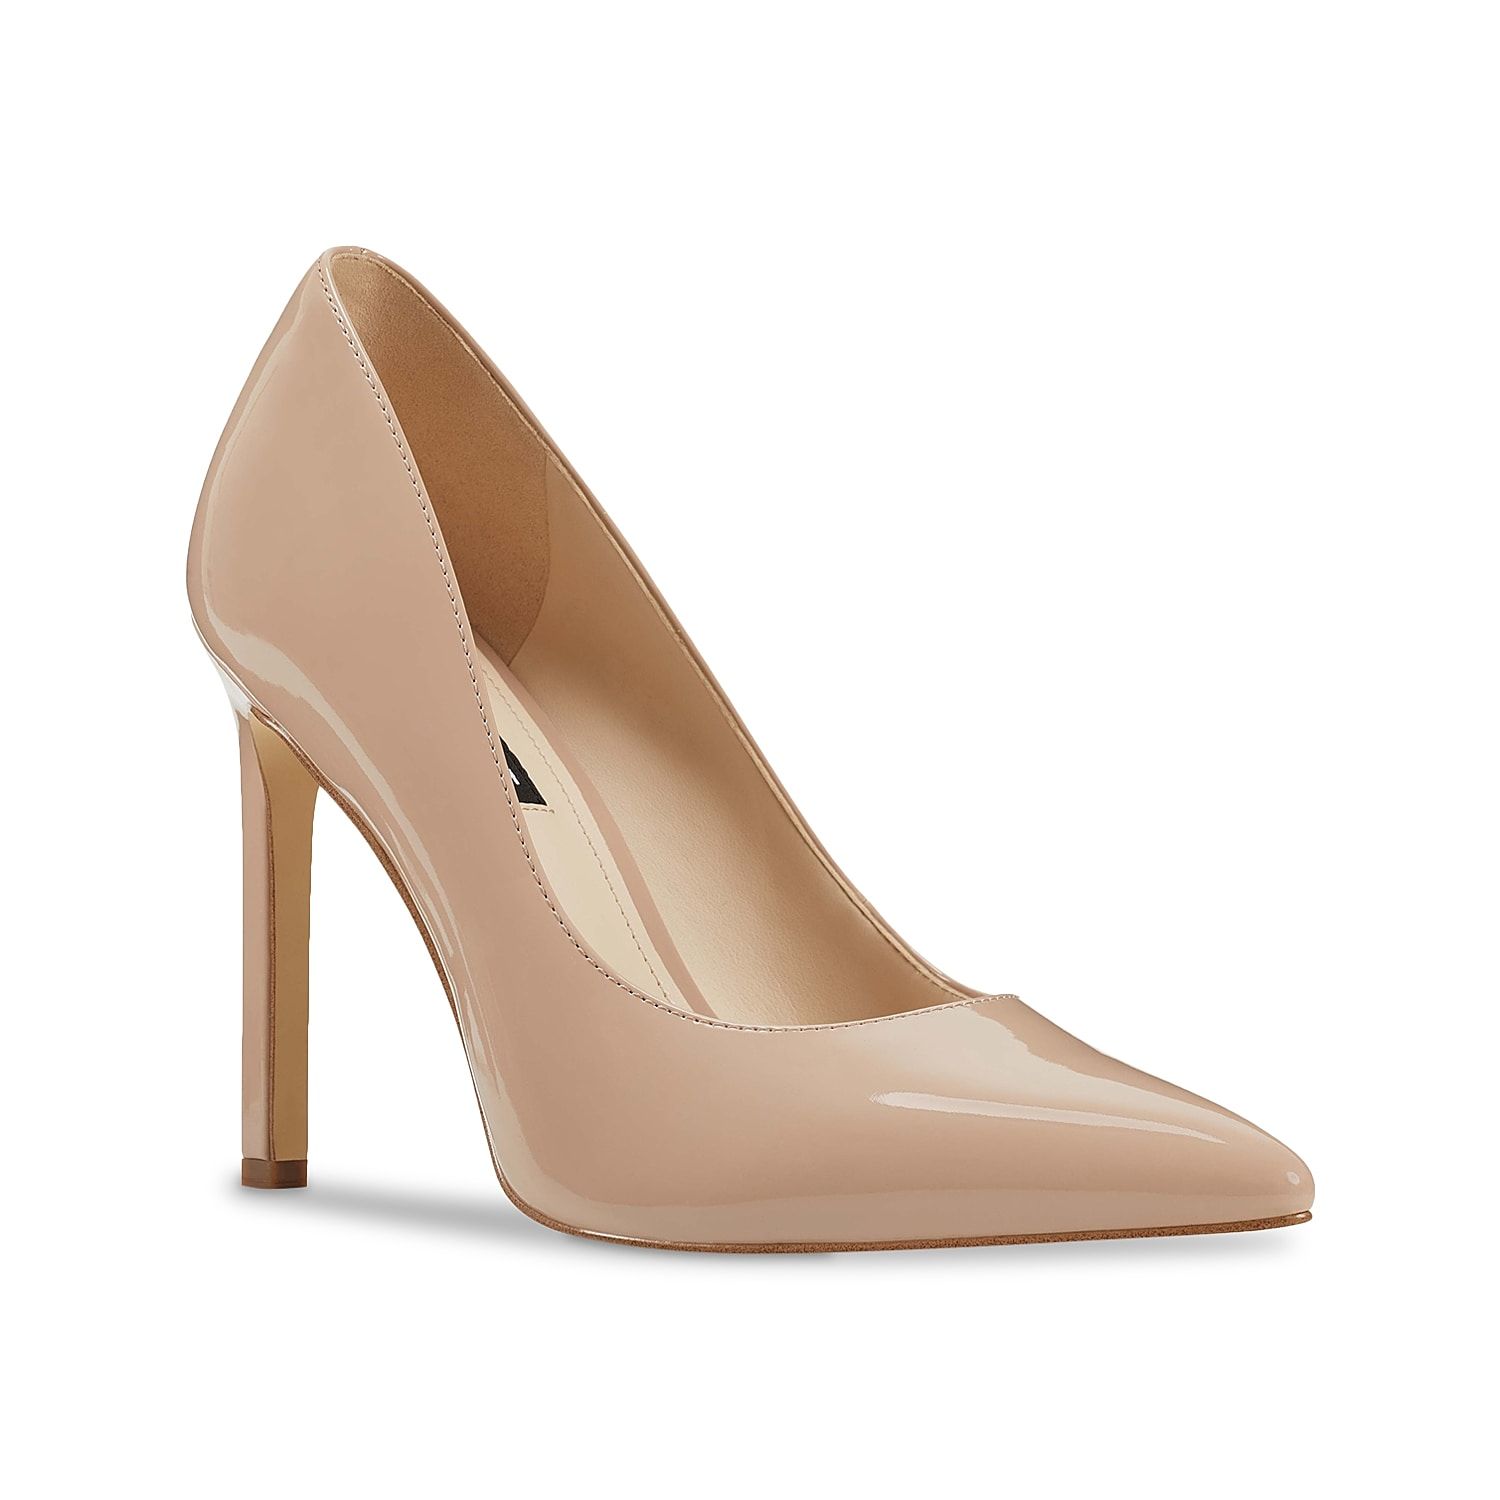 Amp up any outfit with the Tatiana 3 pump from Nine West. With a towering stiletto and neutral hue, this pointed toe pair will complement anything from short dresses or distressed jeans.